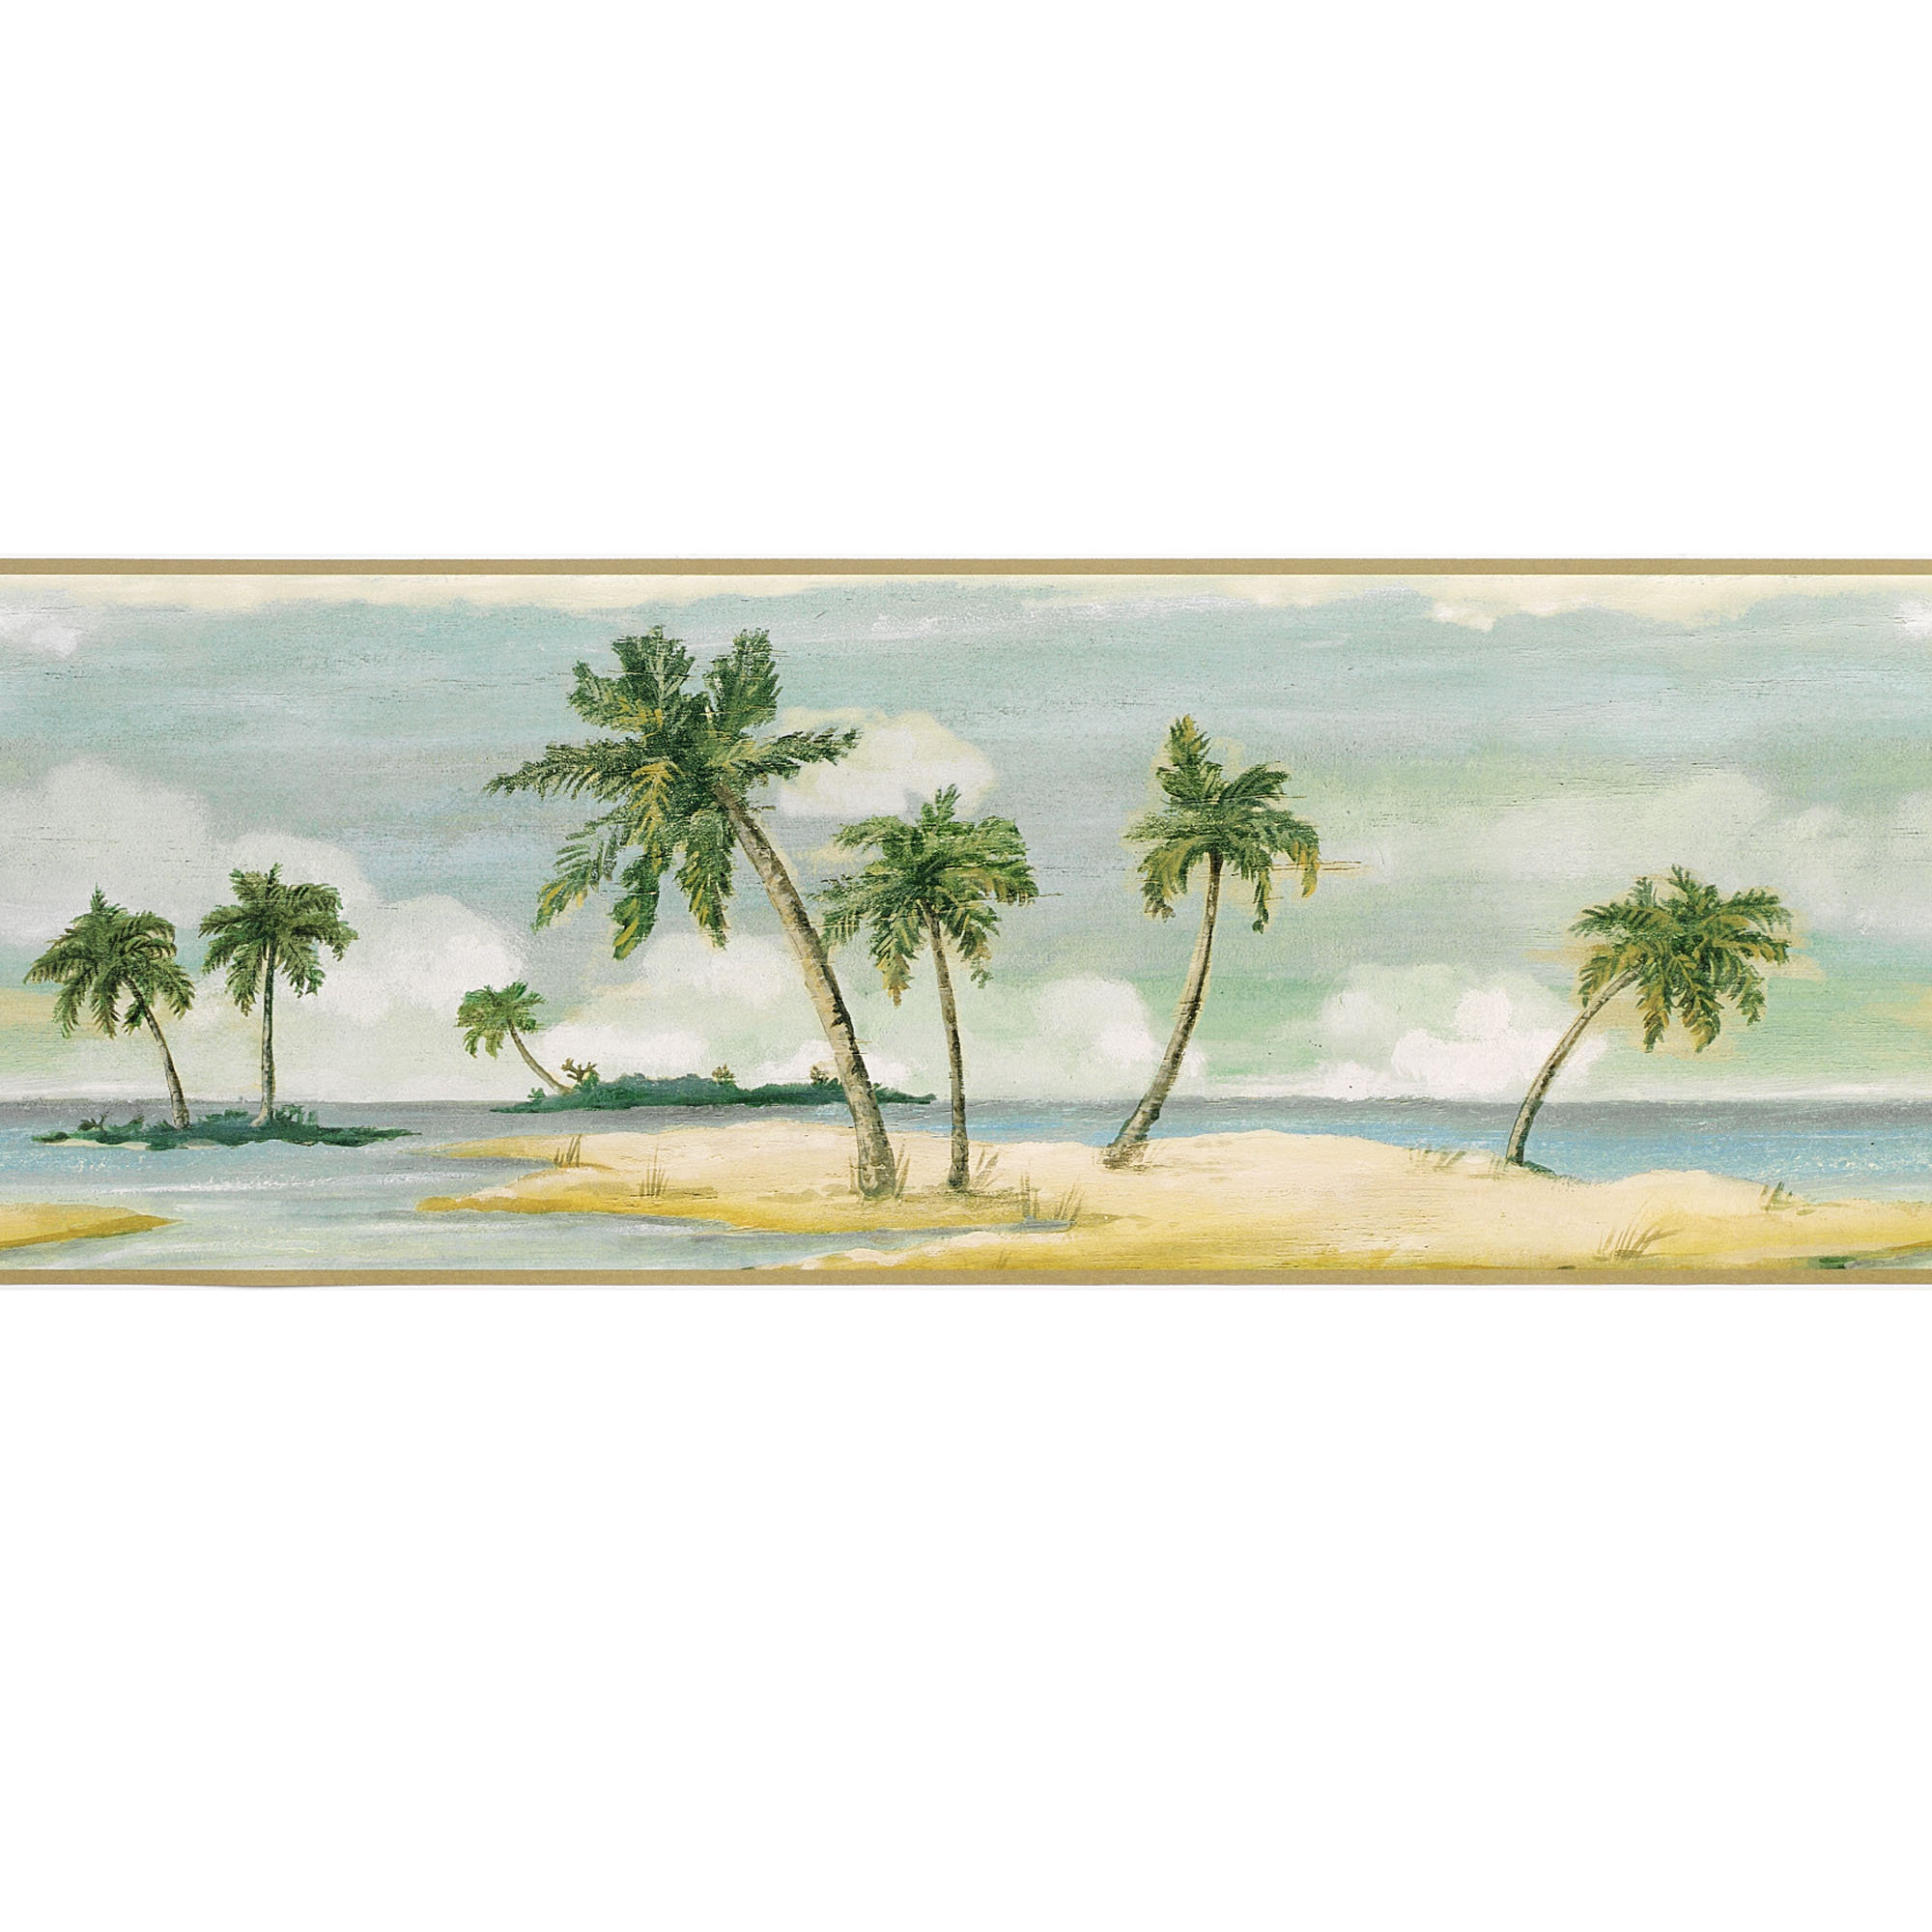 Home Tranquil Islands Palm Tree Wallpaper Border 2000x2000